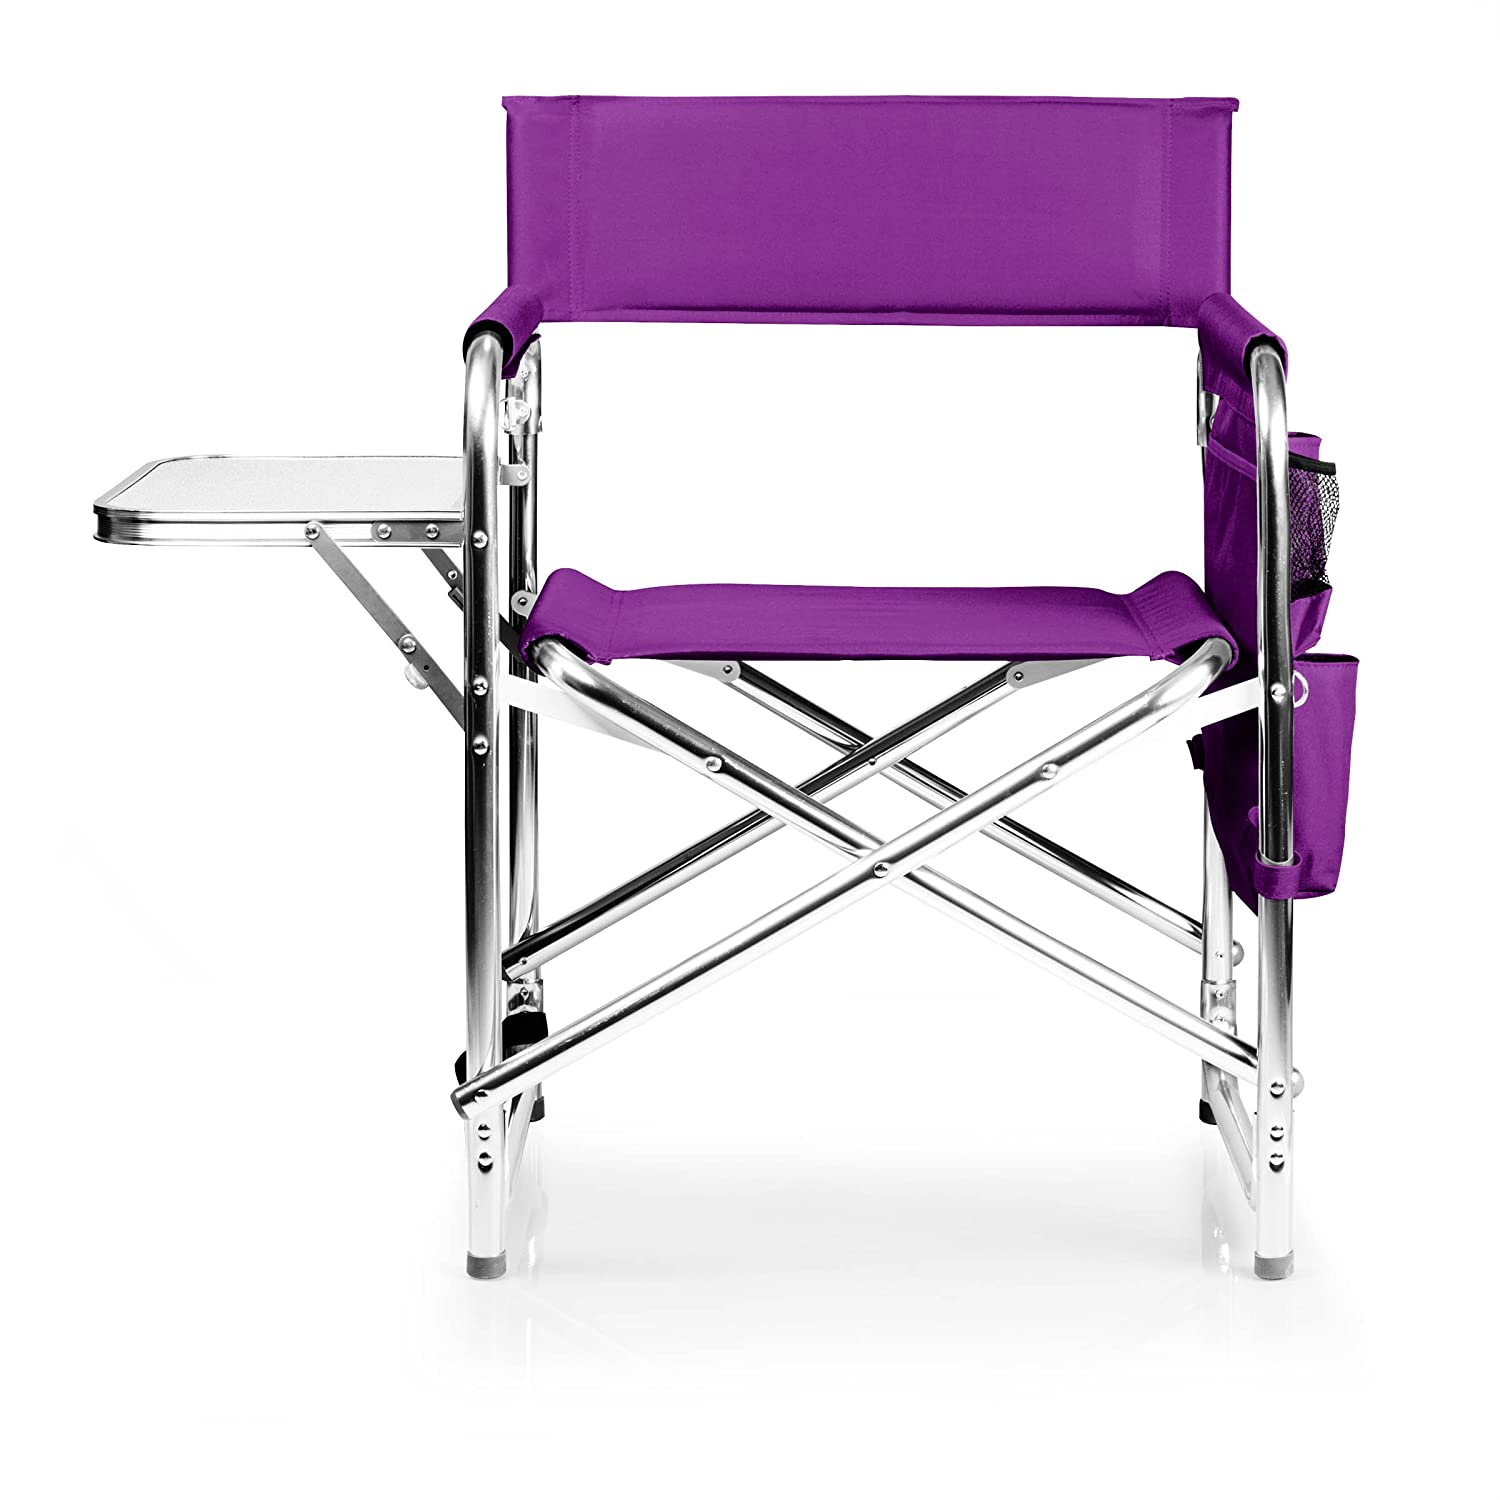 ONIVA – a Picnic Time brand Portable Folding Sports Chair, Purple